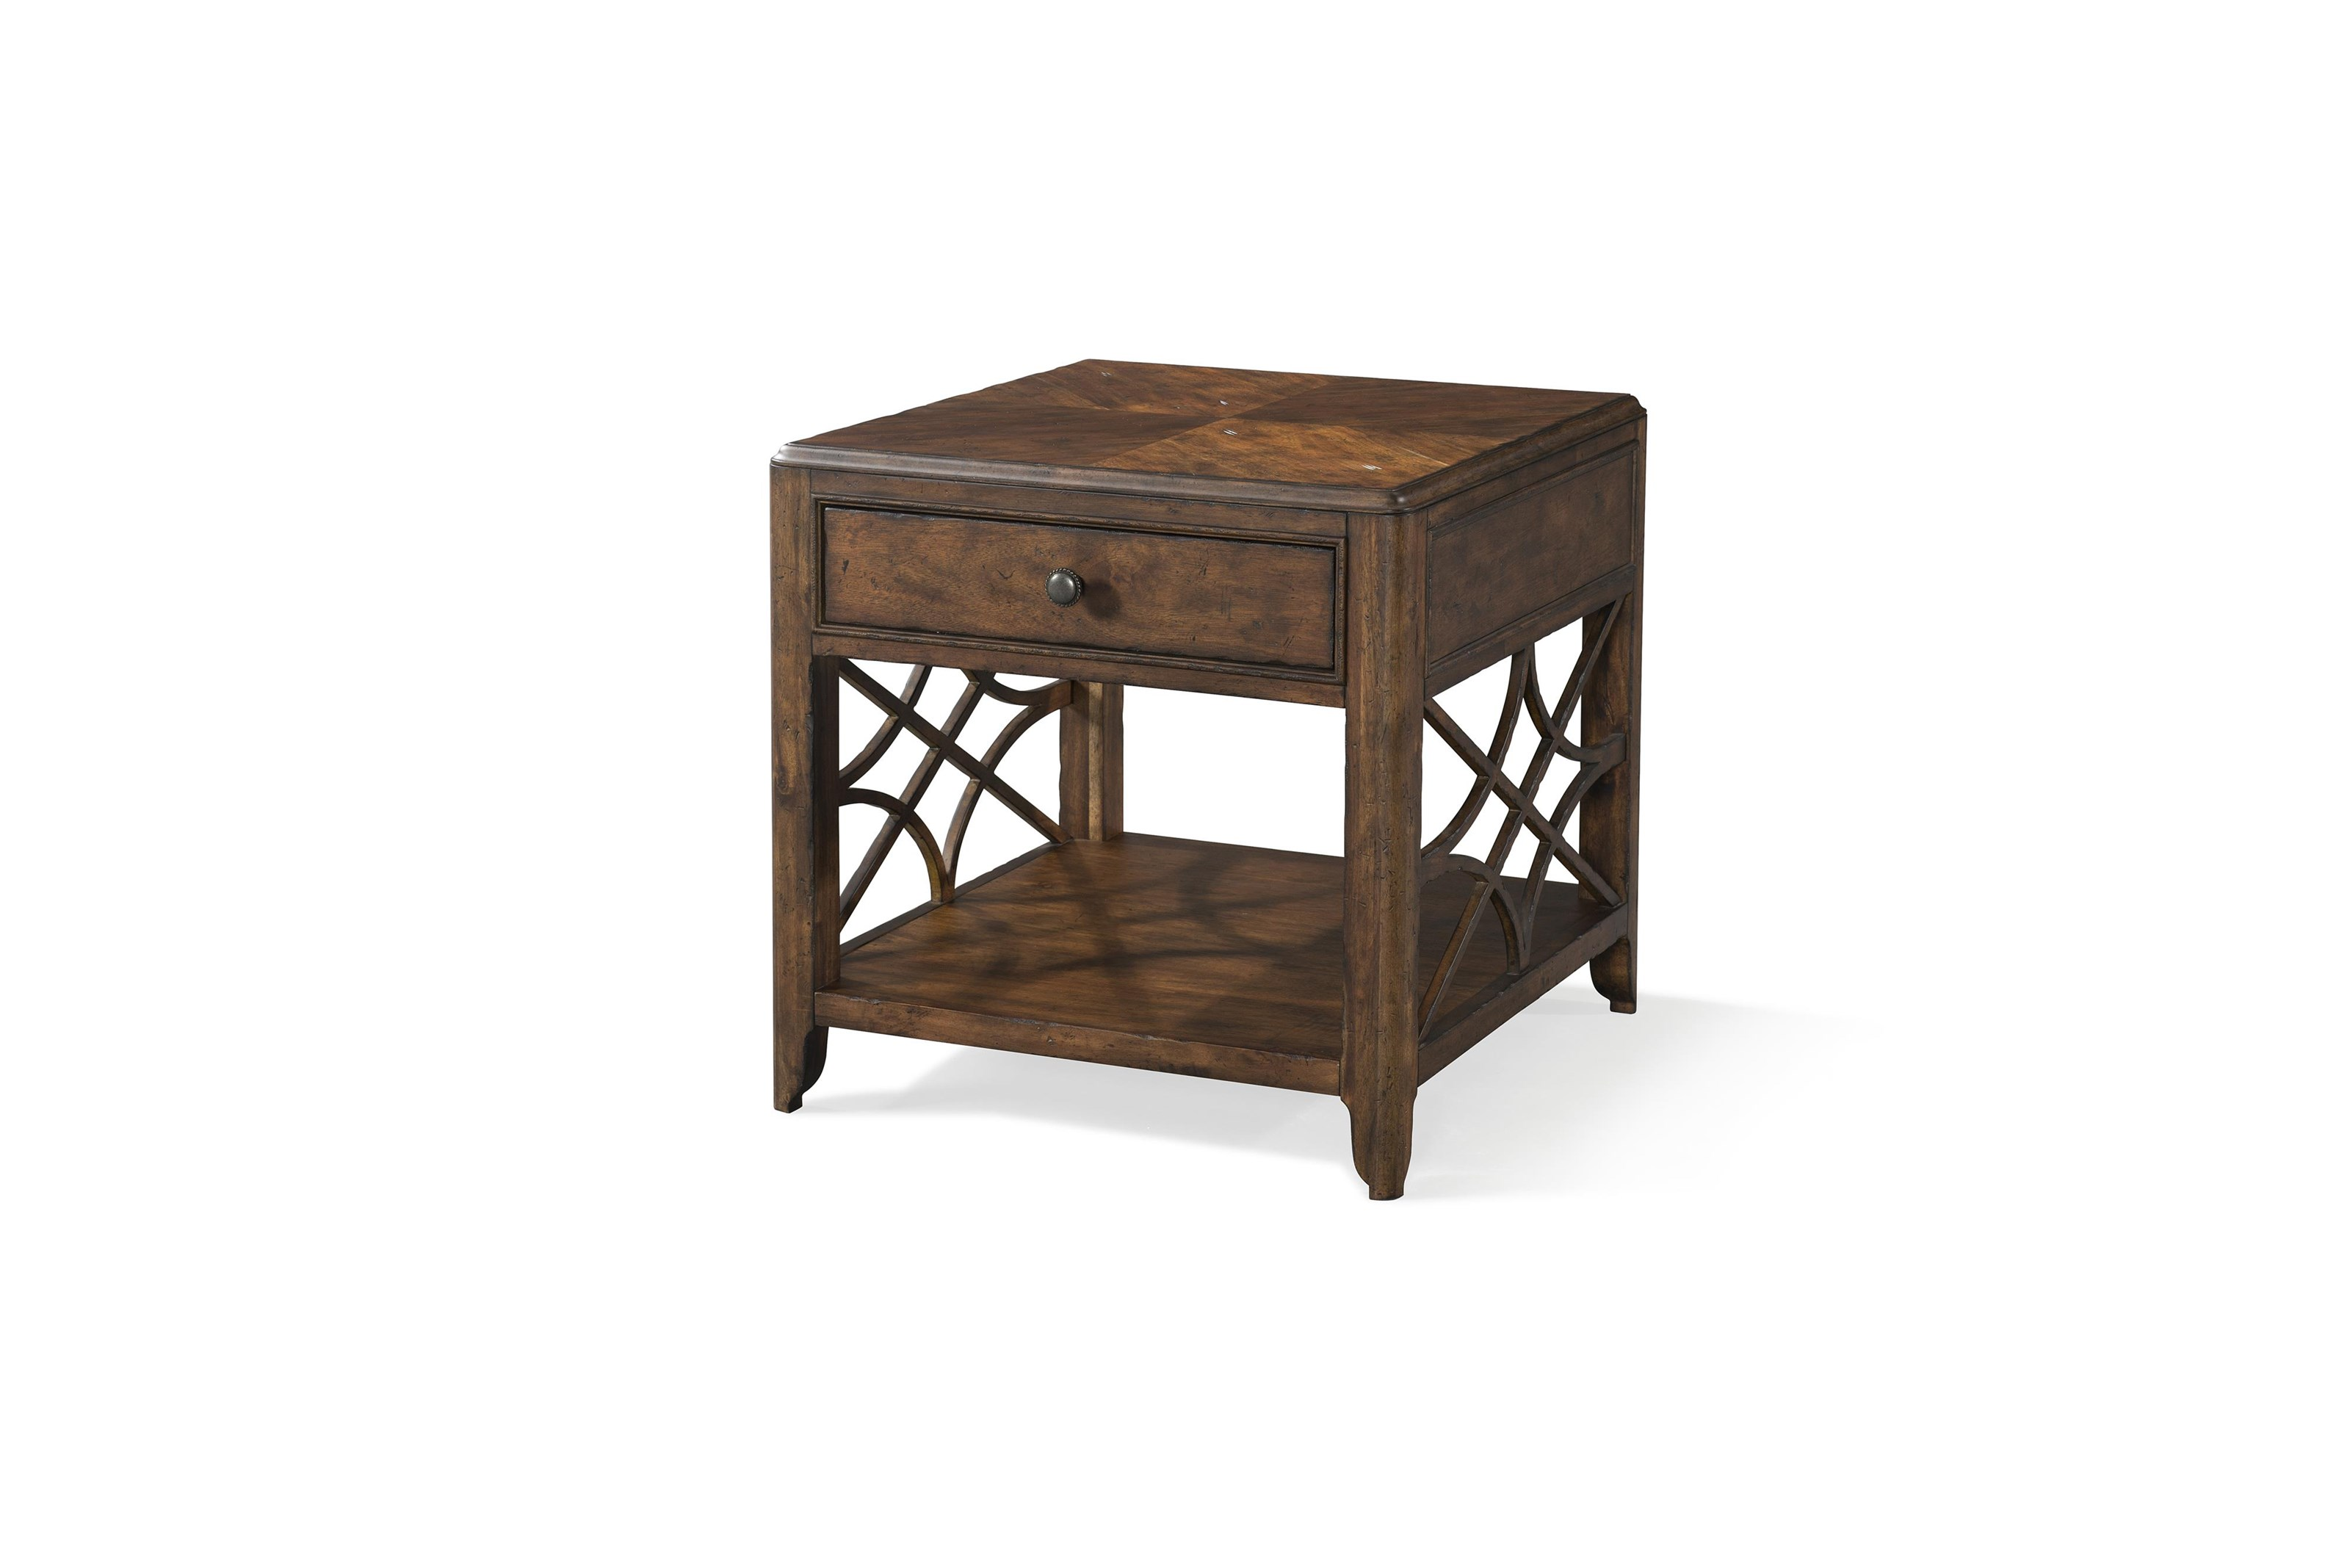 Oneida Oneida Drawer End Table by Klaussner at Morris Home